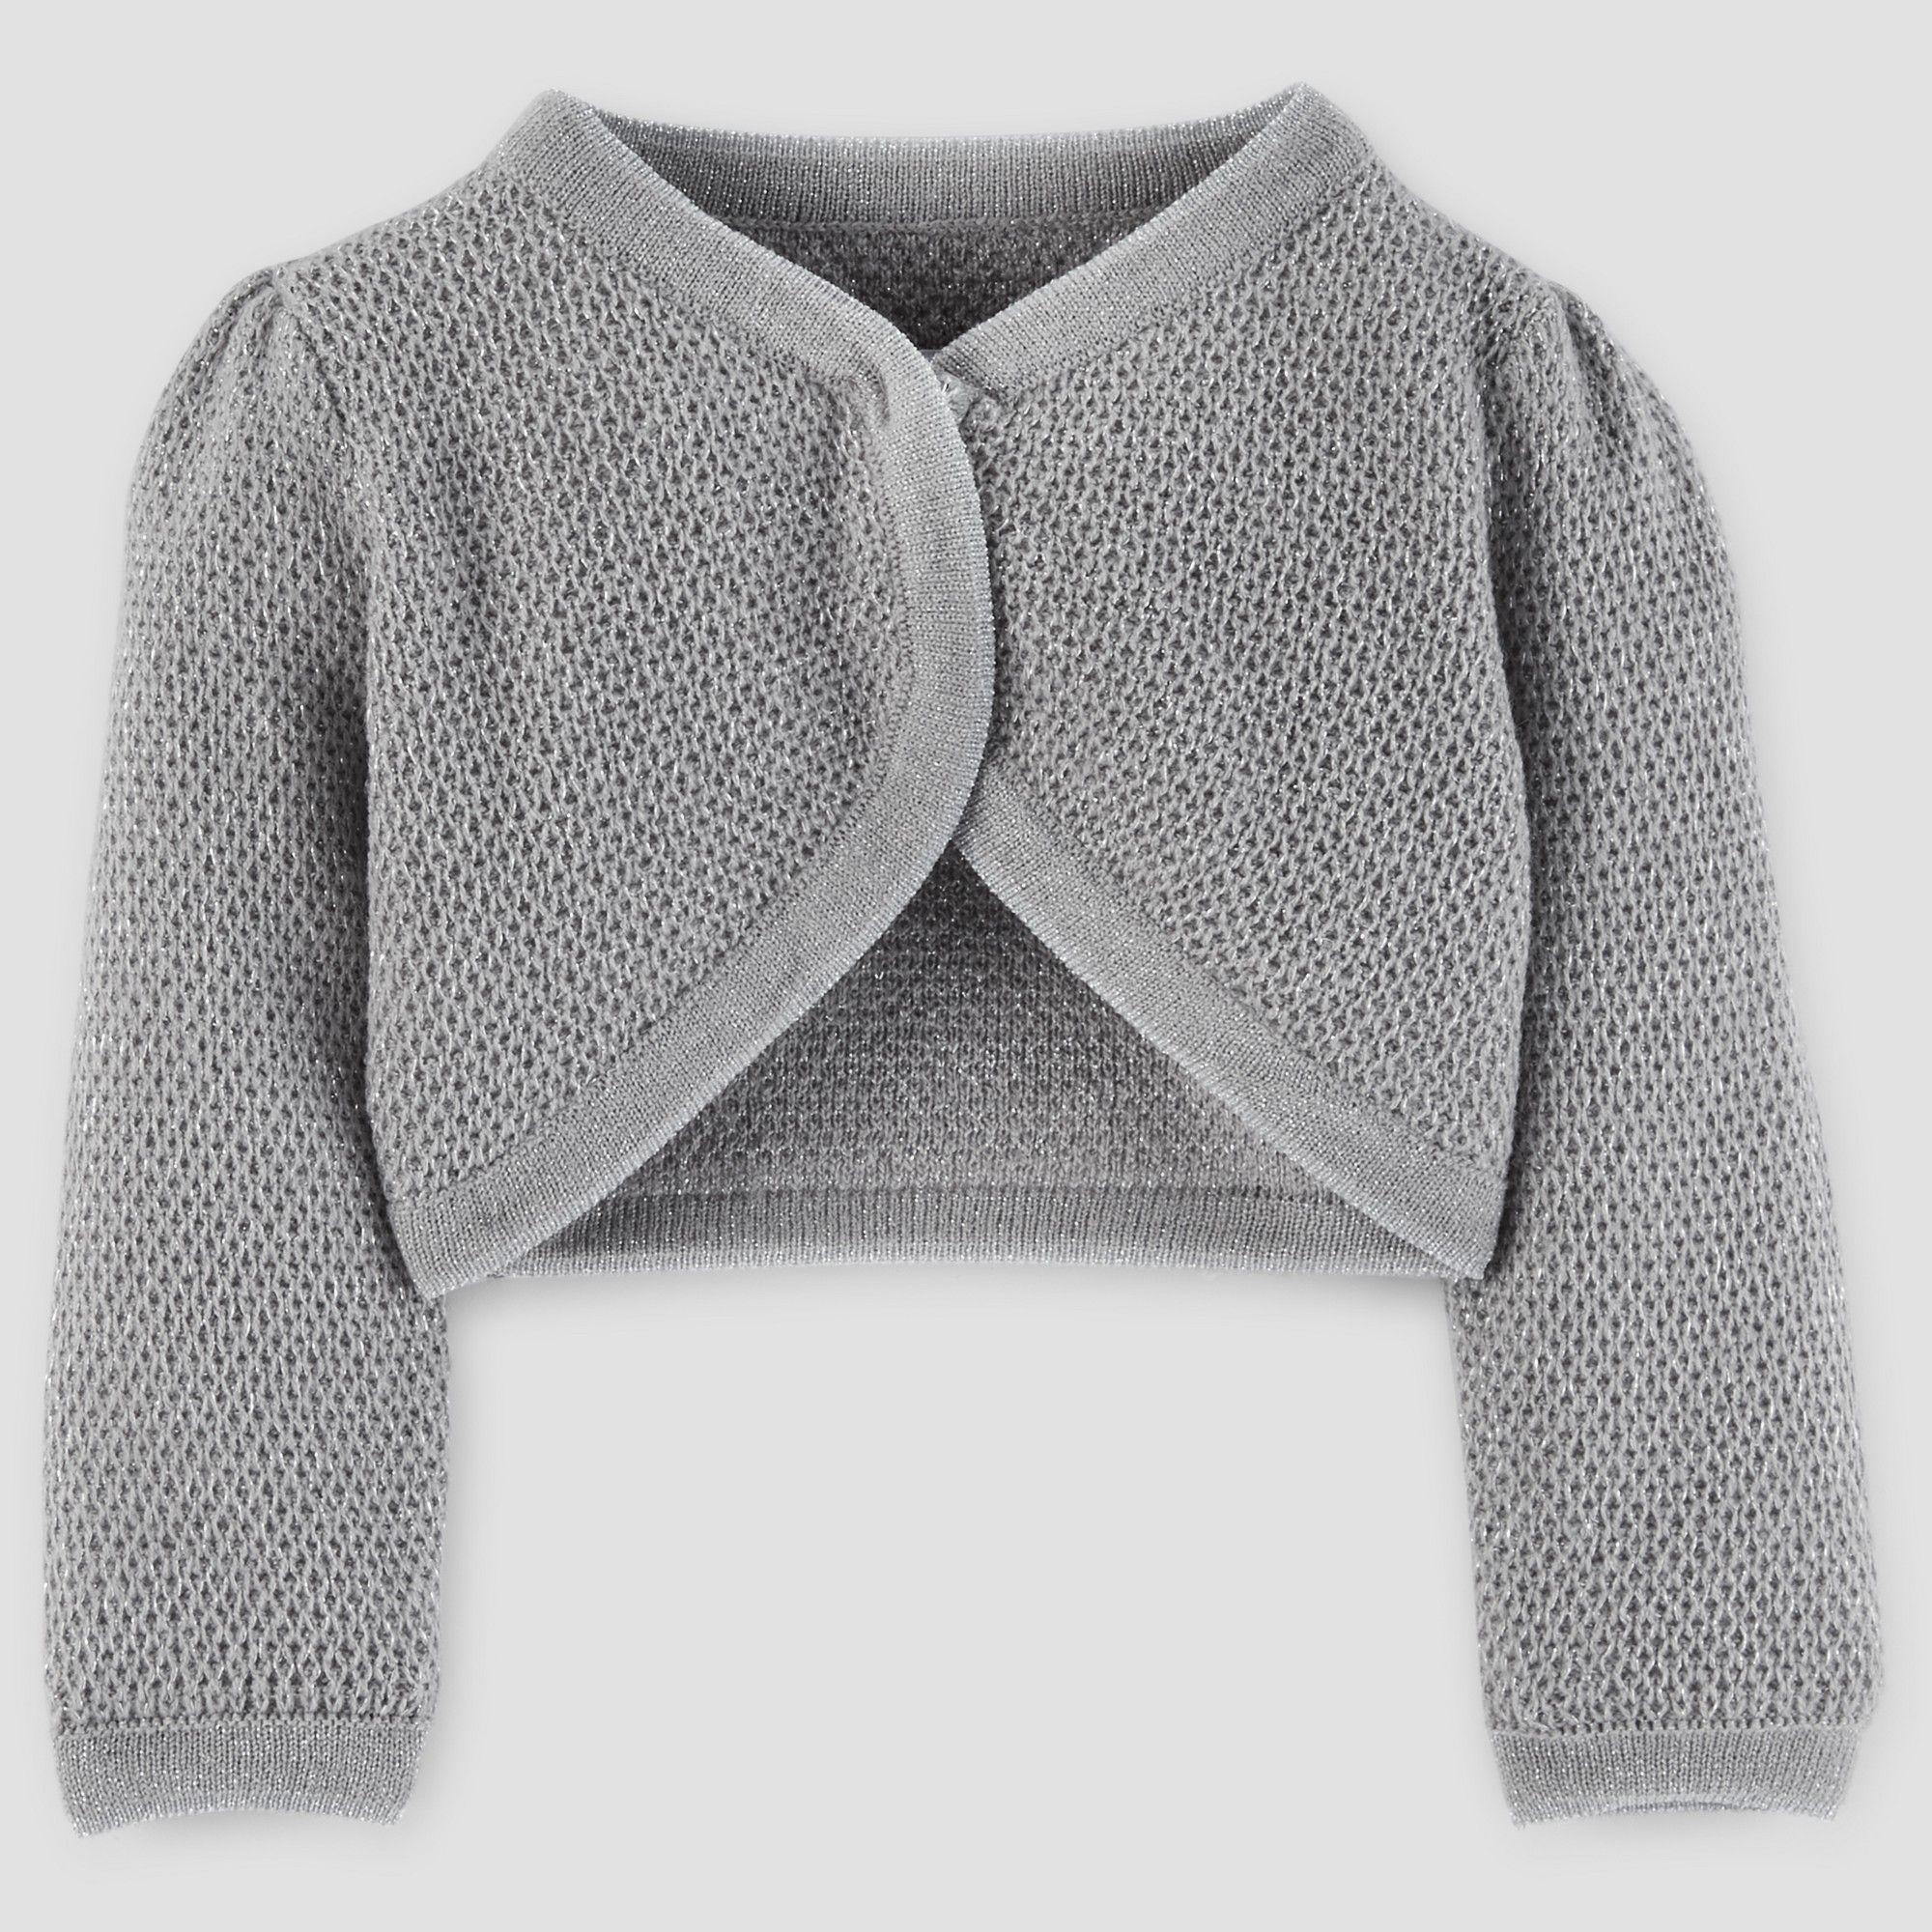 bba35f80ce3 Toddler Girls  Cardigan Sweater - Just One You Made by Carter s Silver  Metallic 5T